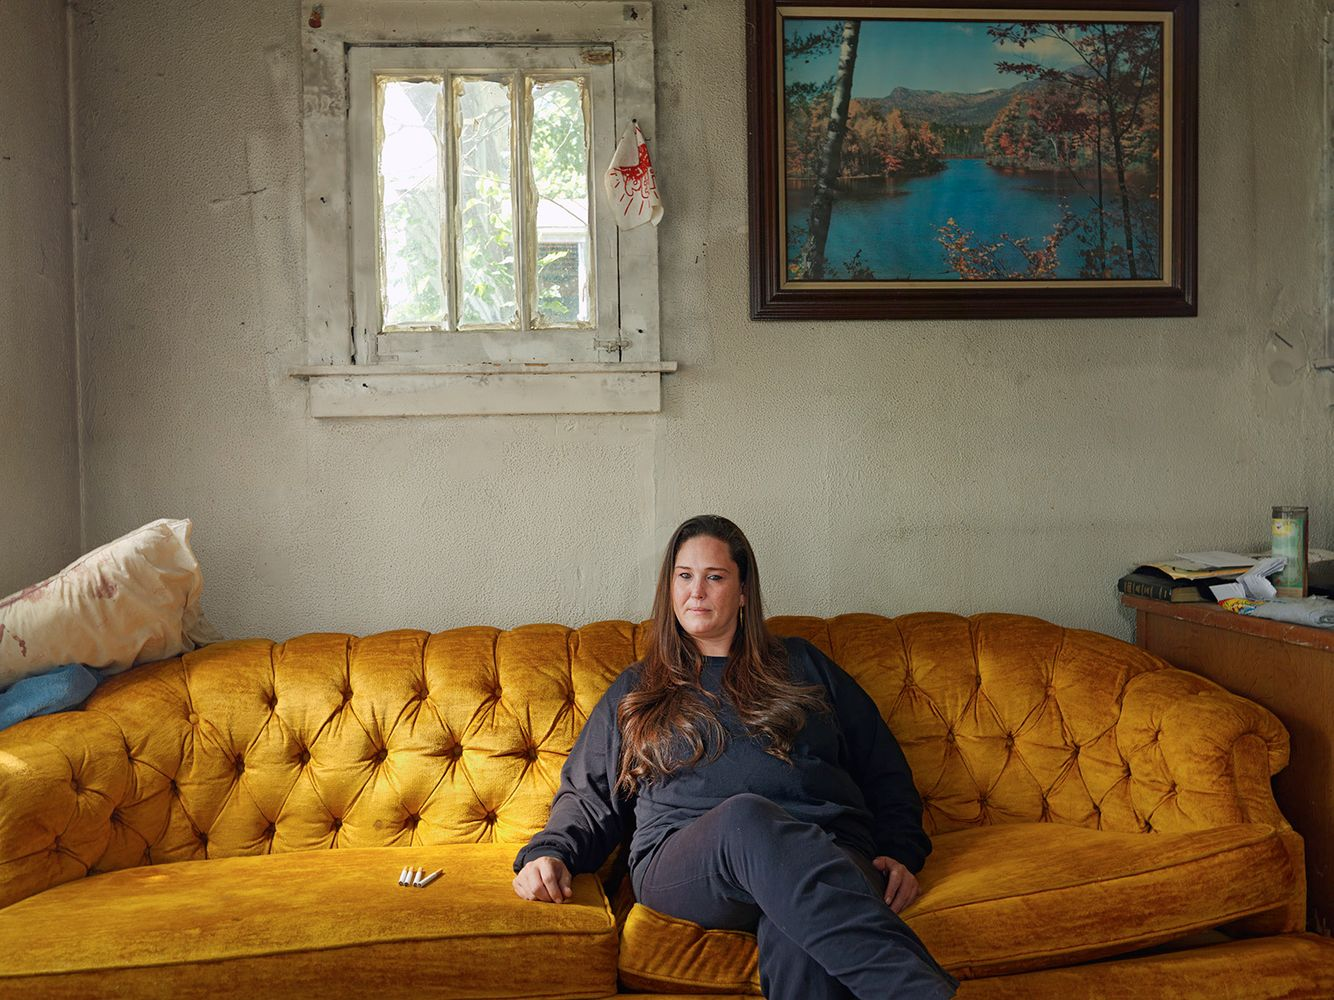 Patricia in Her New House with Her Cigarette Ration, Goldengate Street Resident, Detroit 2012